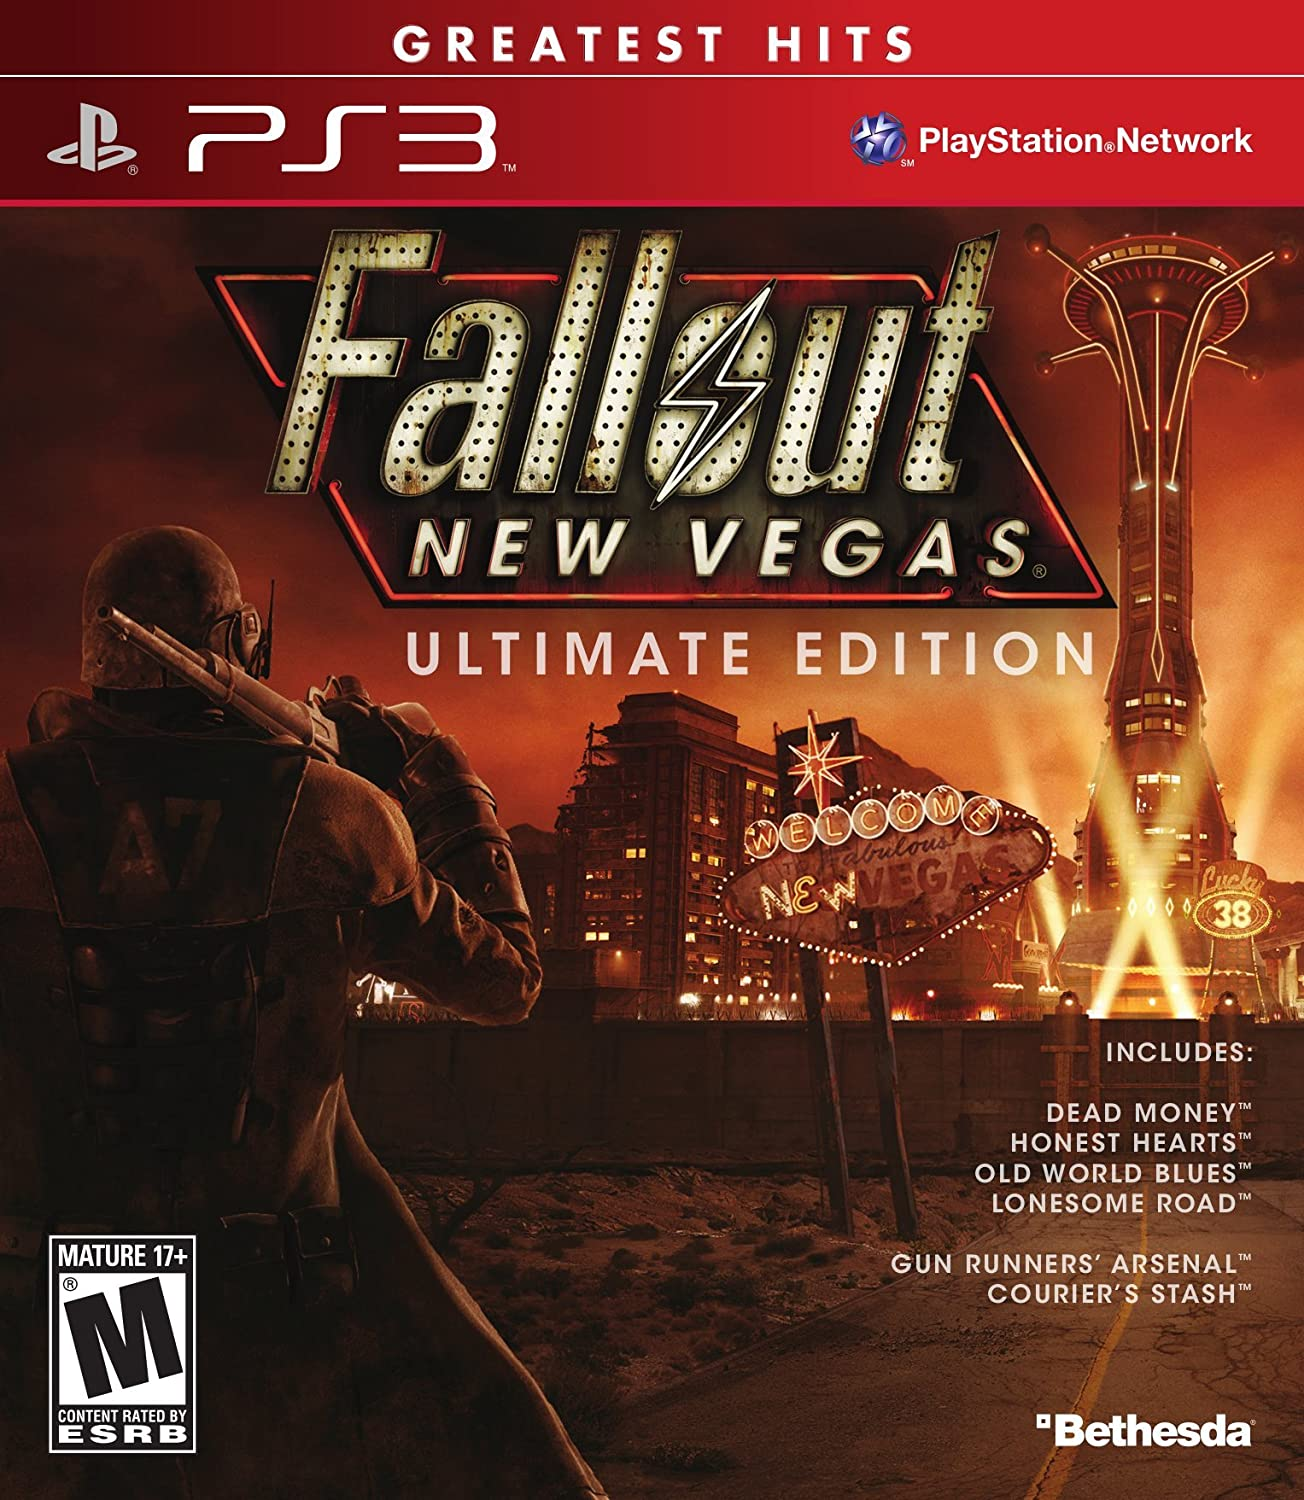 Fallout: New Vegas - Playstation 3 Ultimate Edition